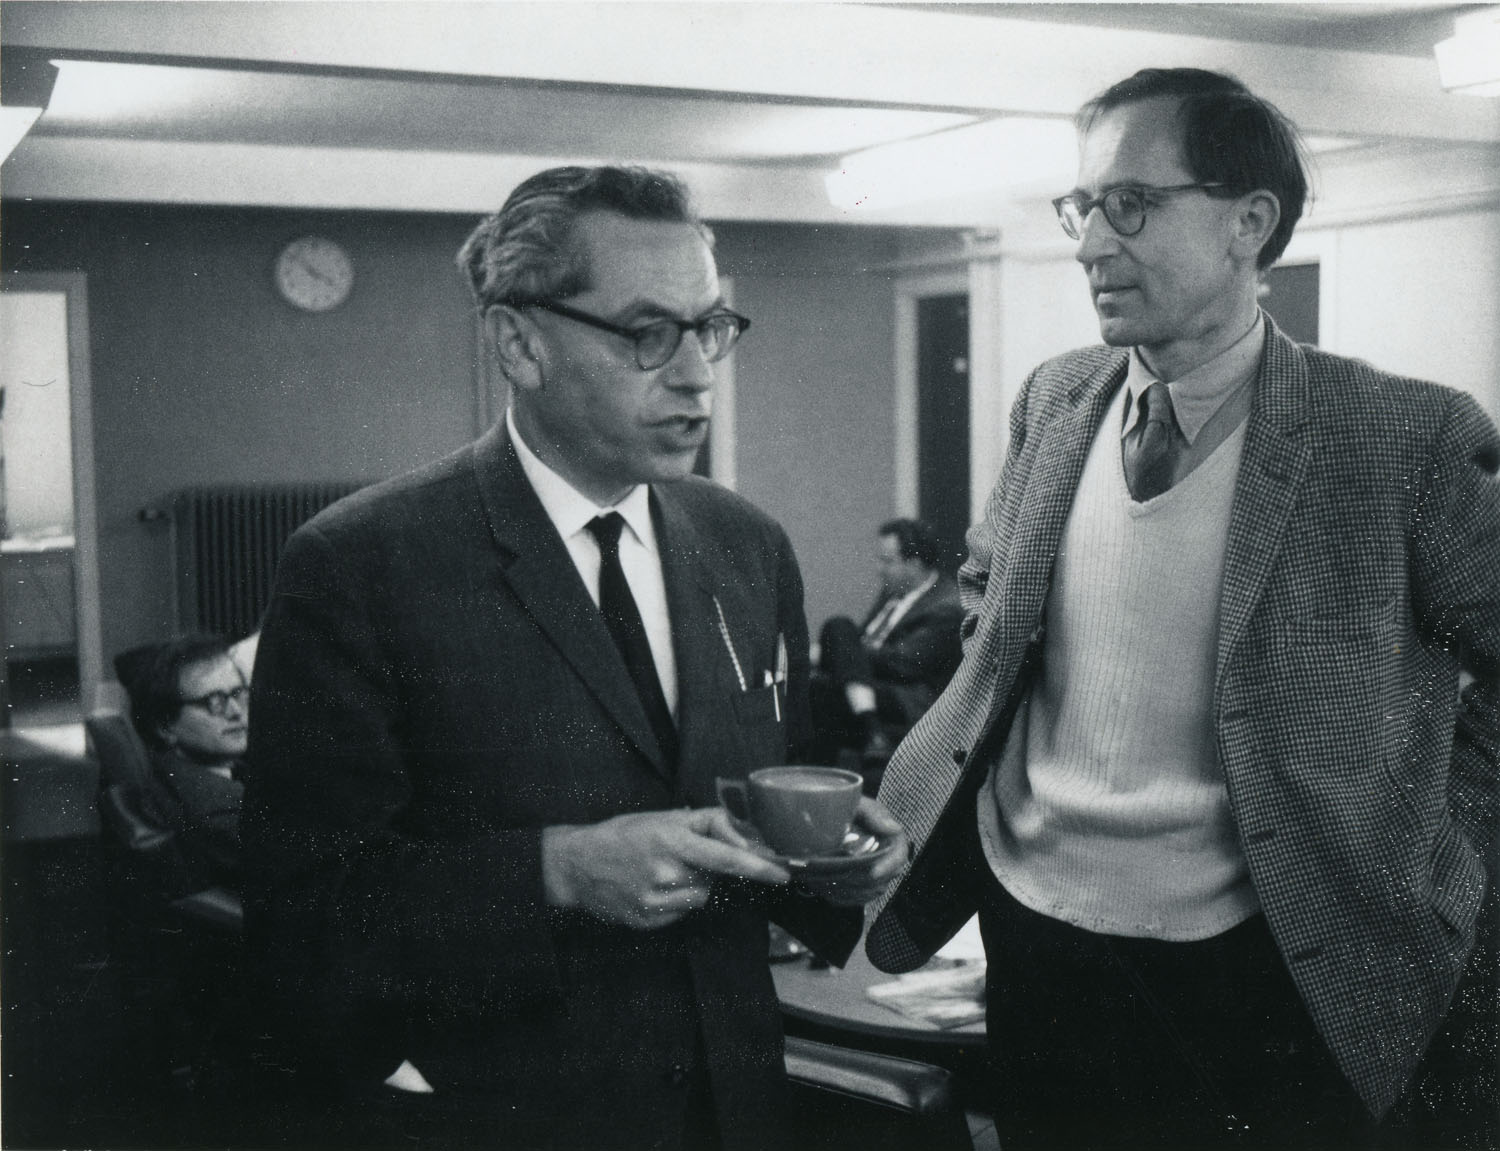 Paul Erdos and David Kendall